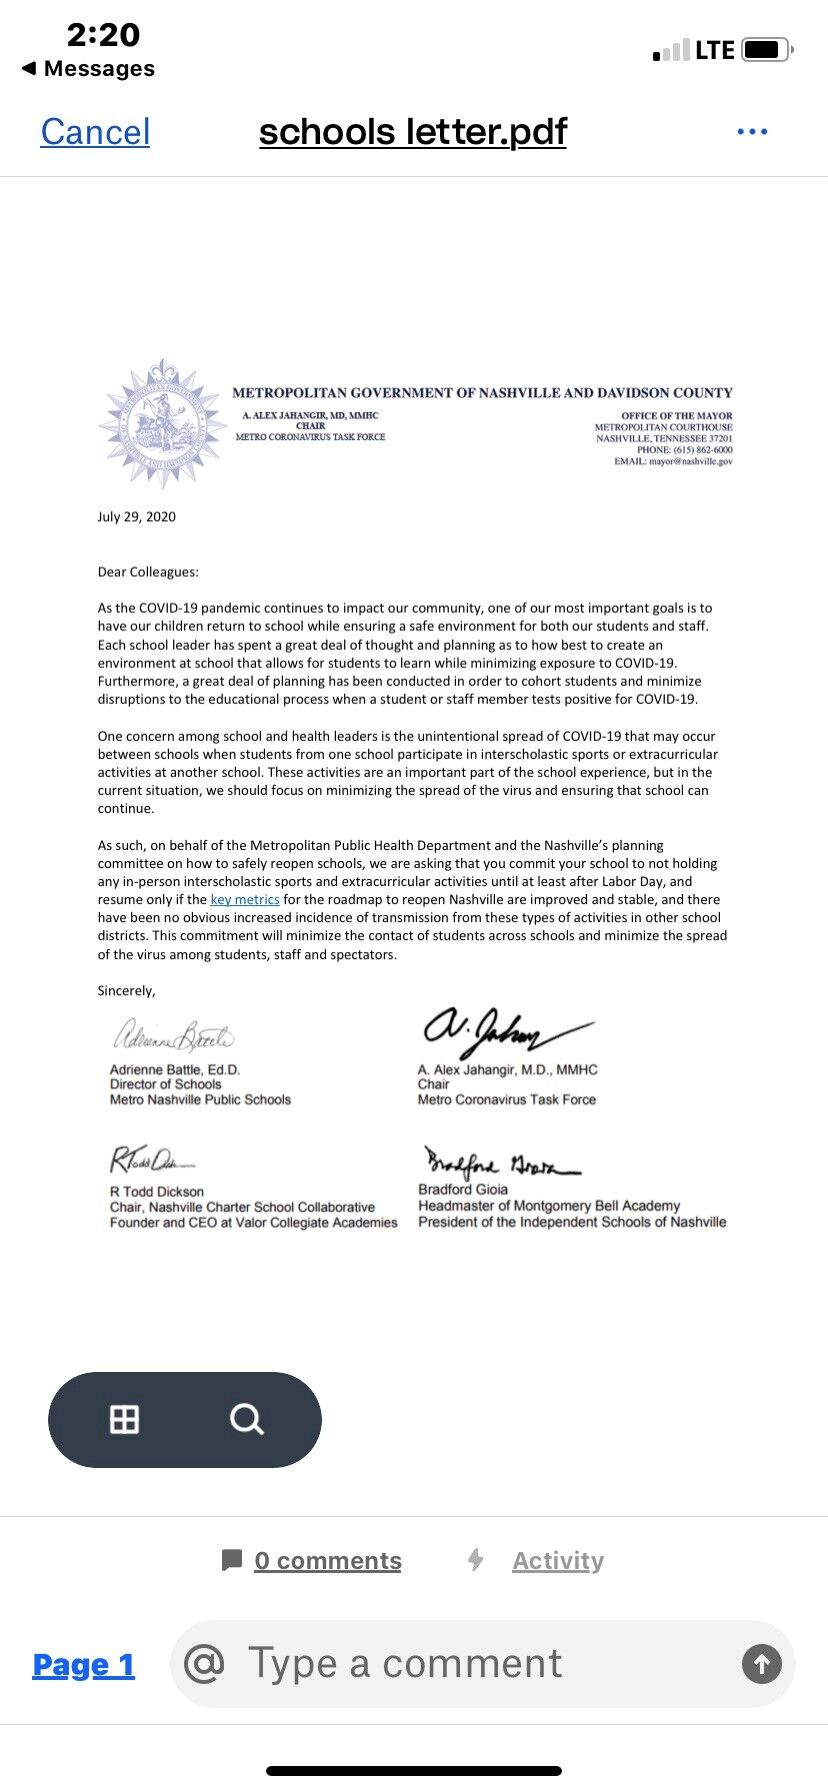 Health, Education Officials Ask Davidson County Schools To With Regard To Davidson County Tn School Candr 2021 2020